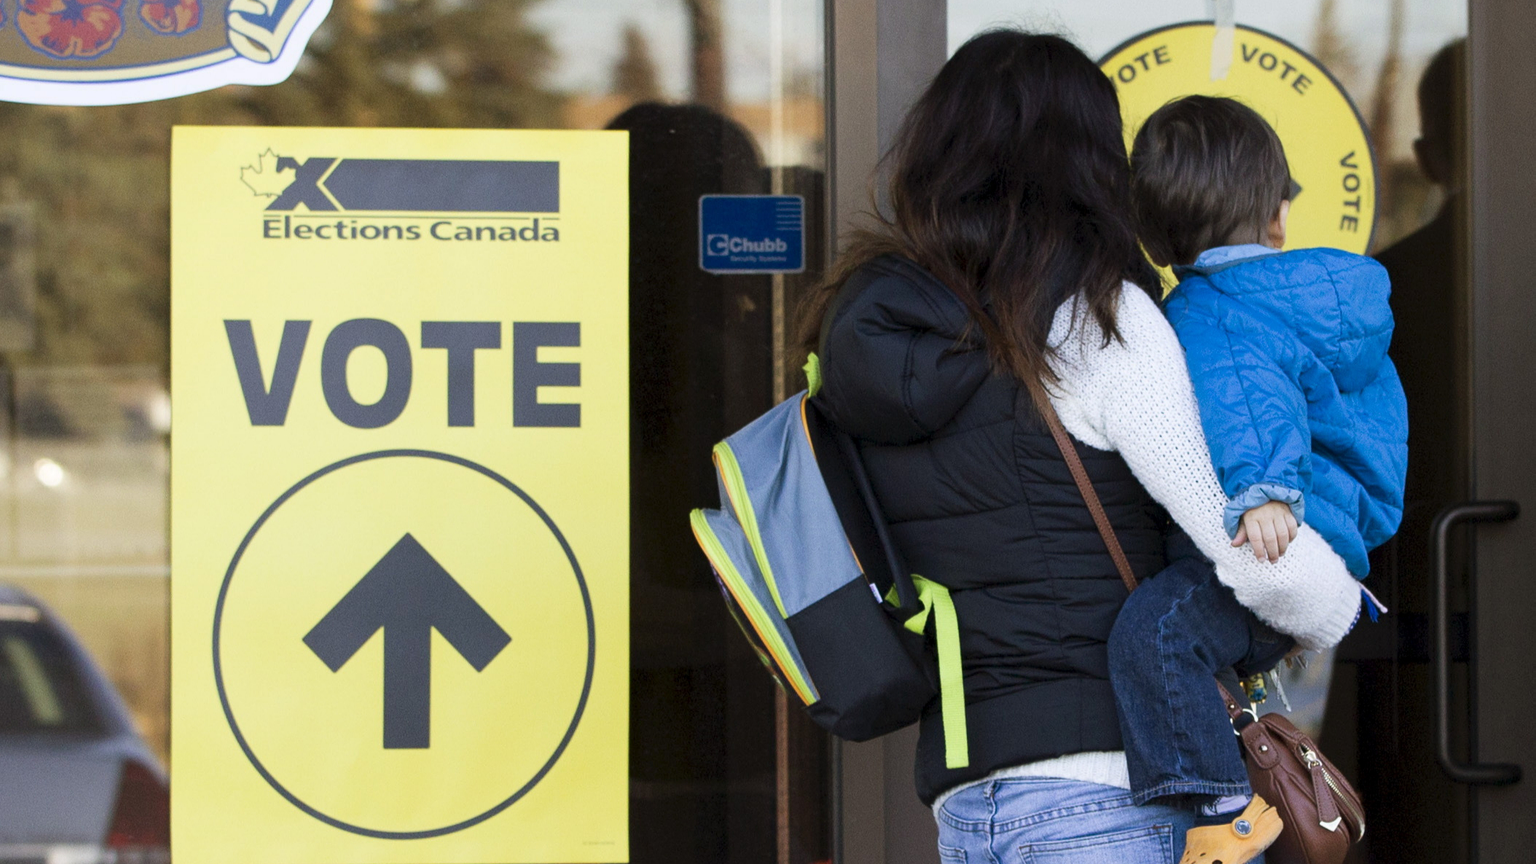 2019 Advance Voting Turnout Was The Highest Ever For A Canadian Election: Estimates